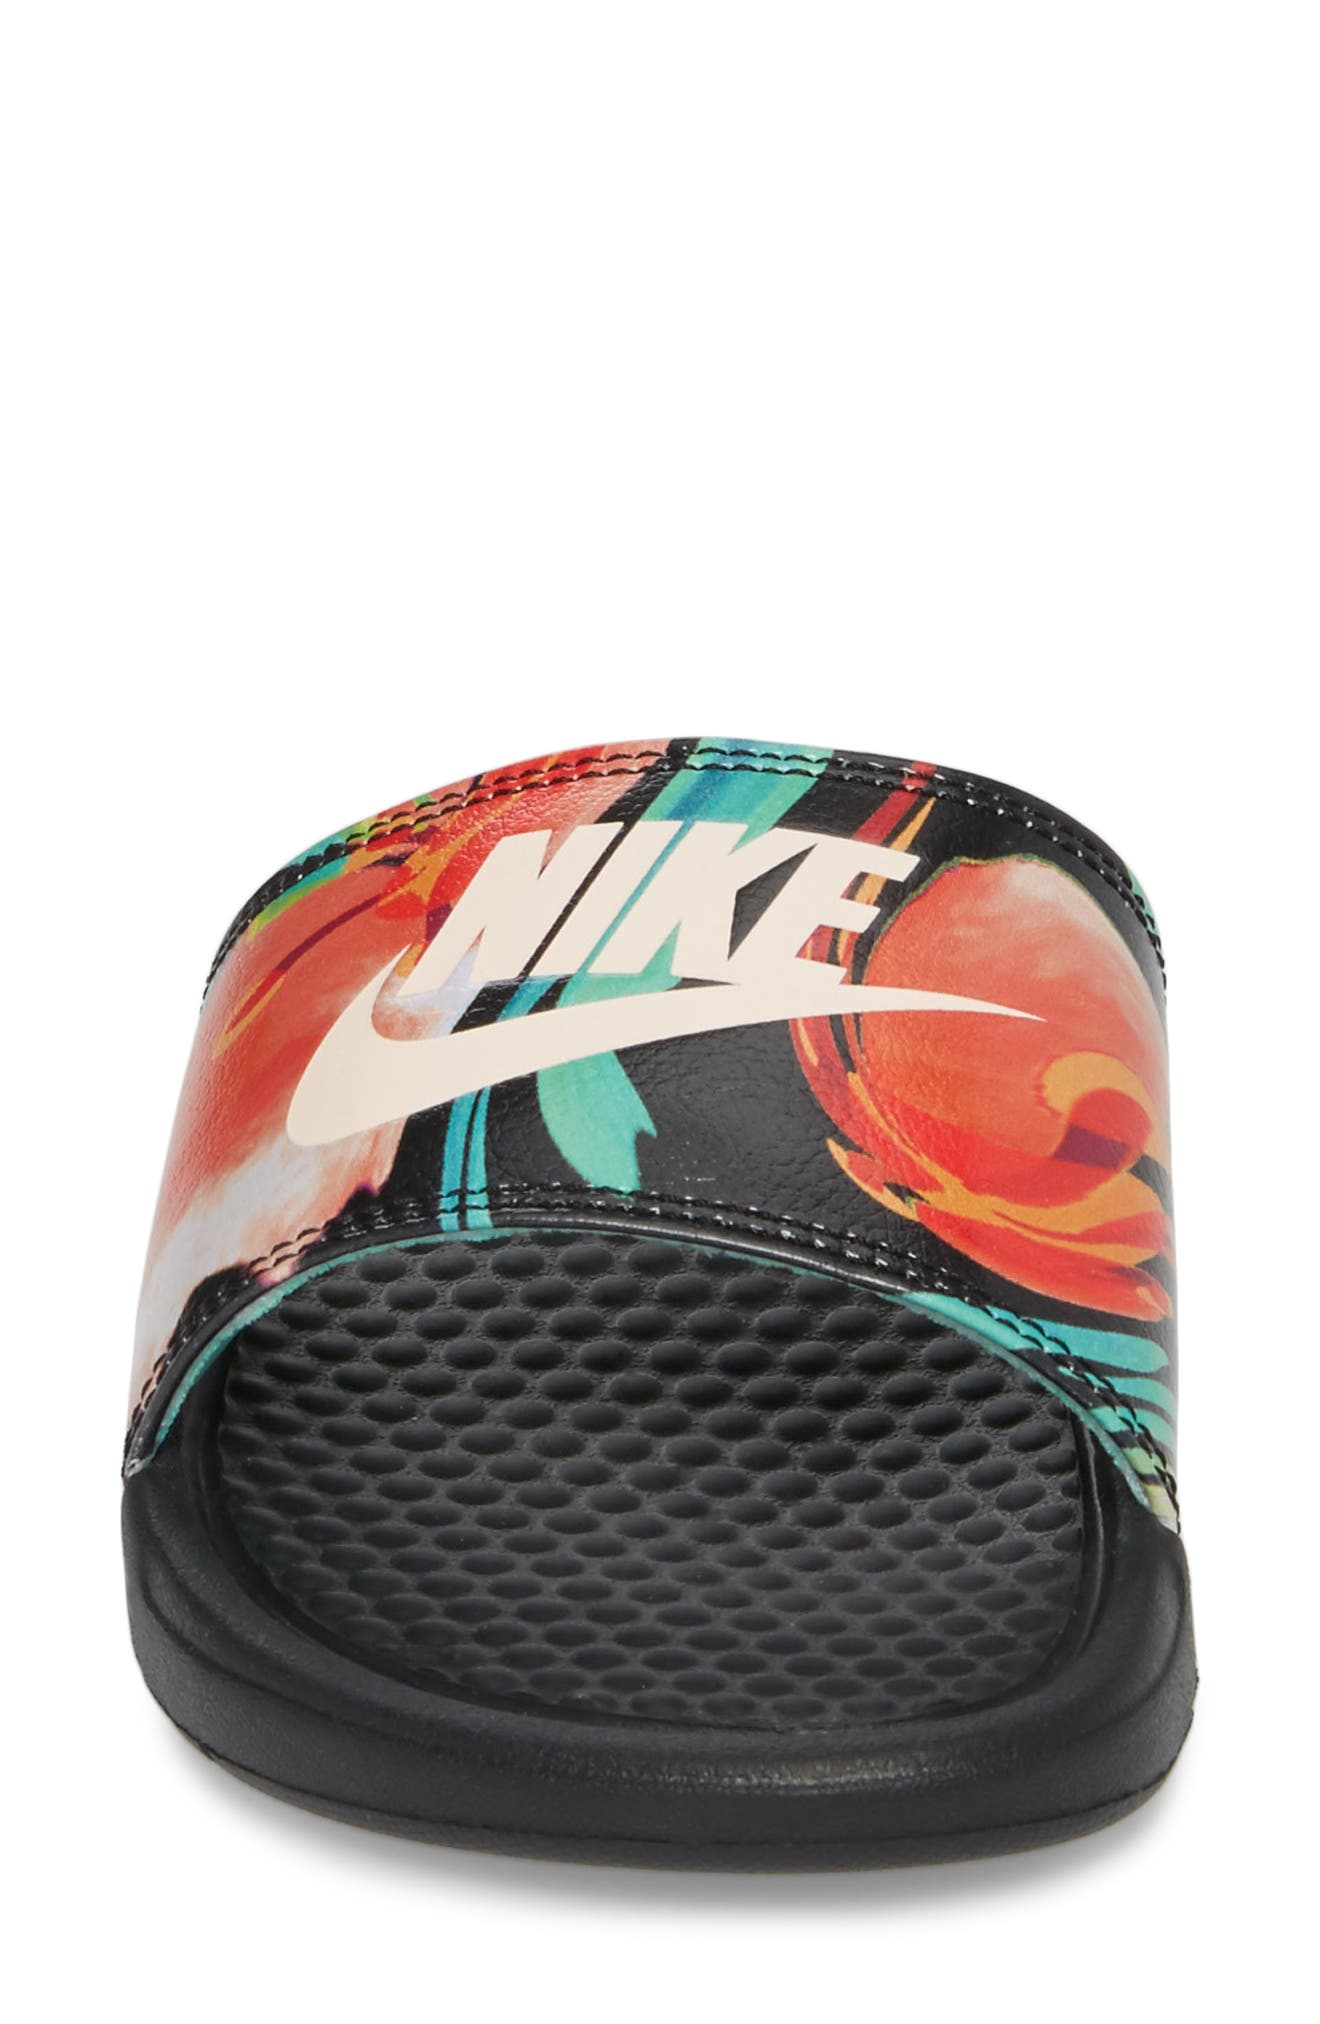 NIKE,                             'Benassi - Just Do It' Print Sandal,                             Alternate thumbnail 4, color,                             BLACK/ CREAM